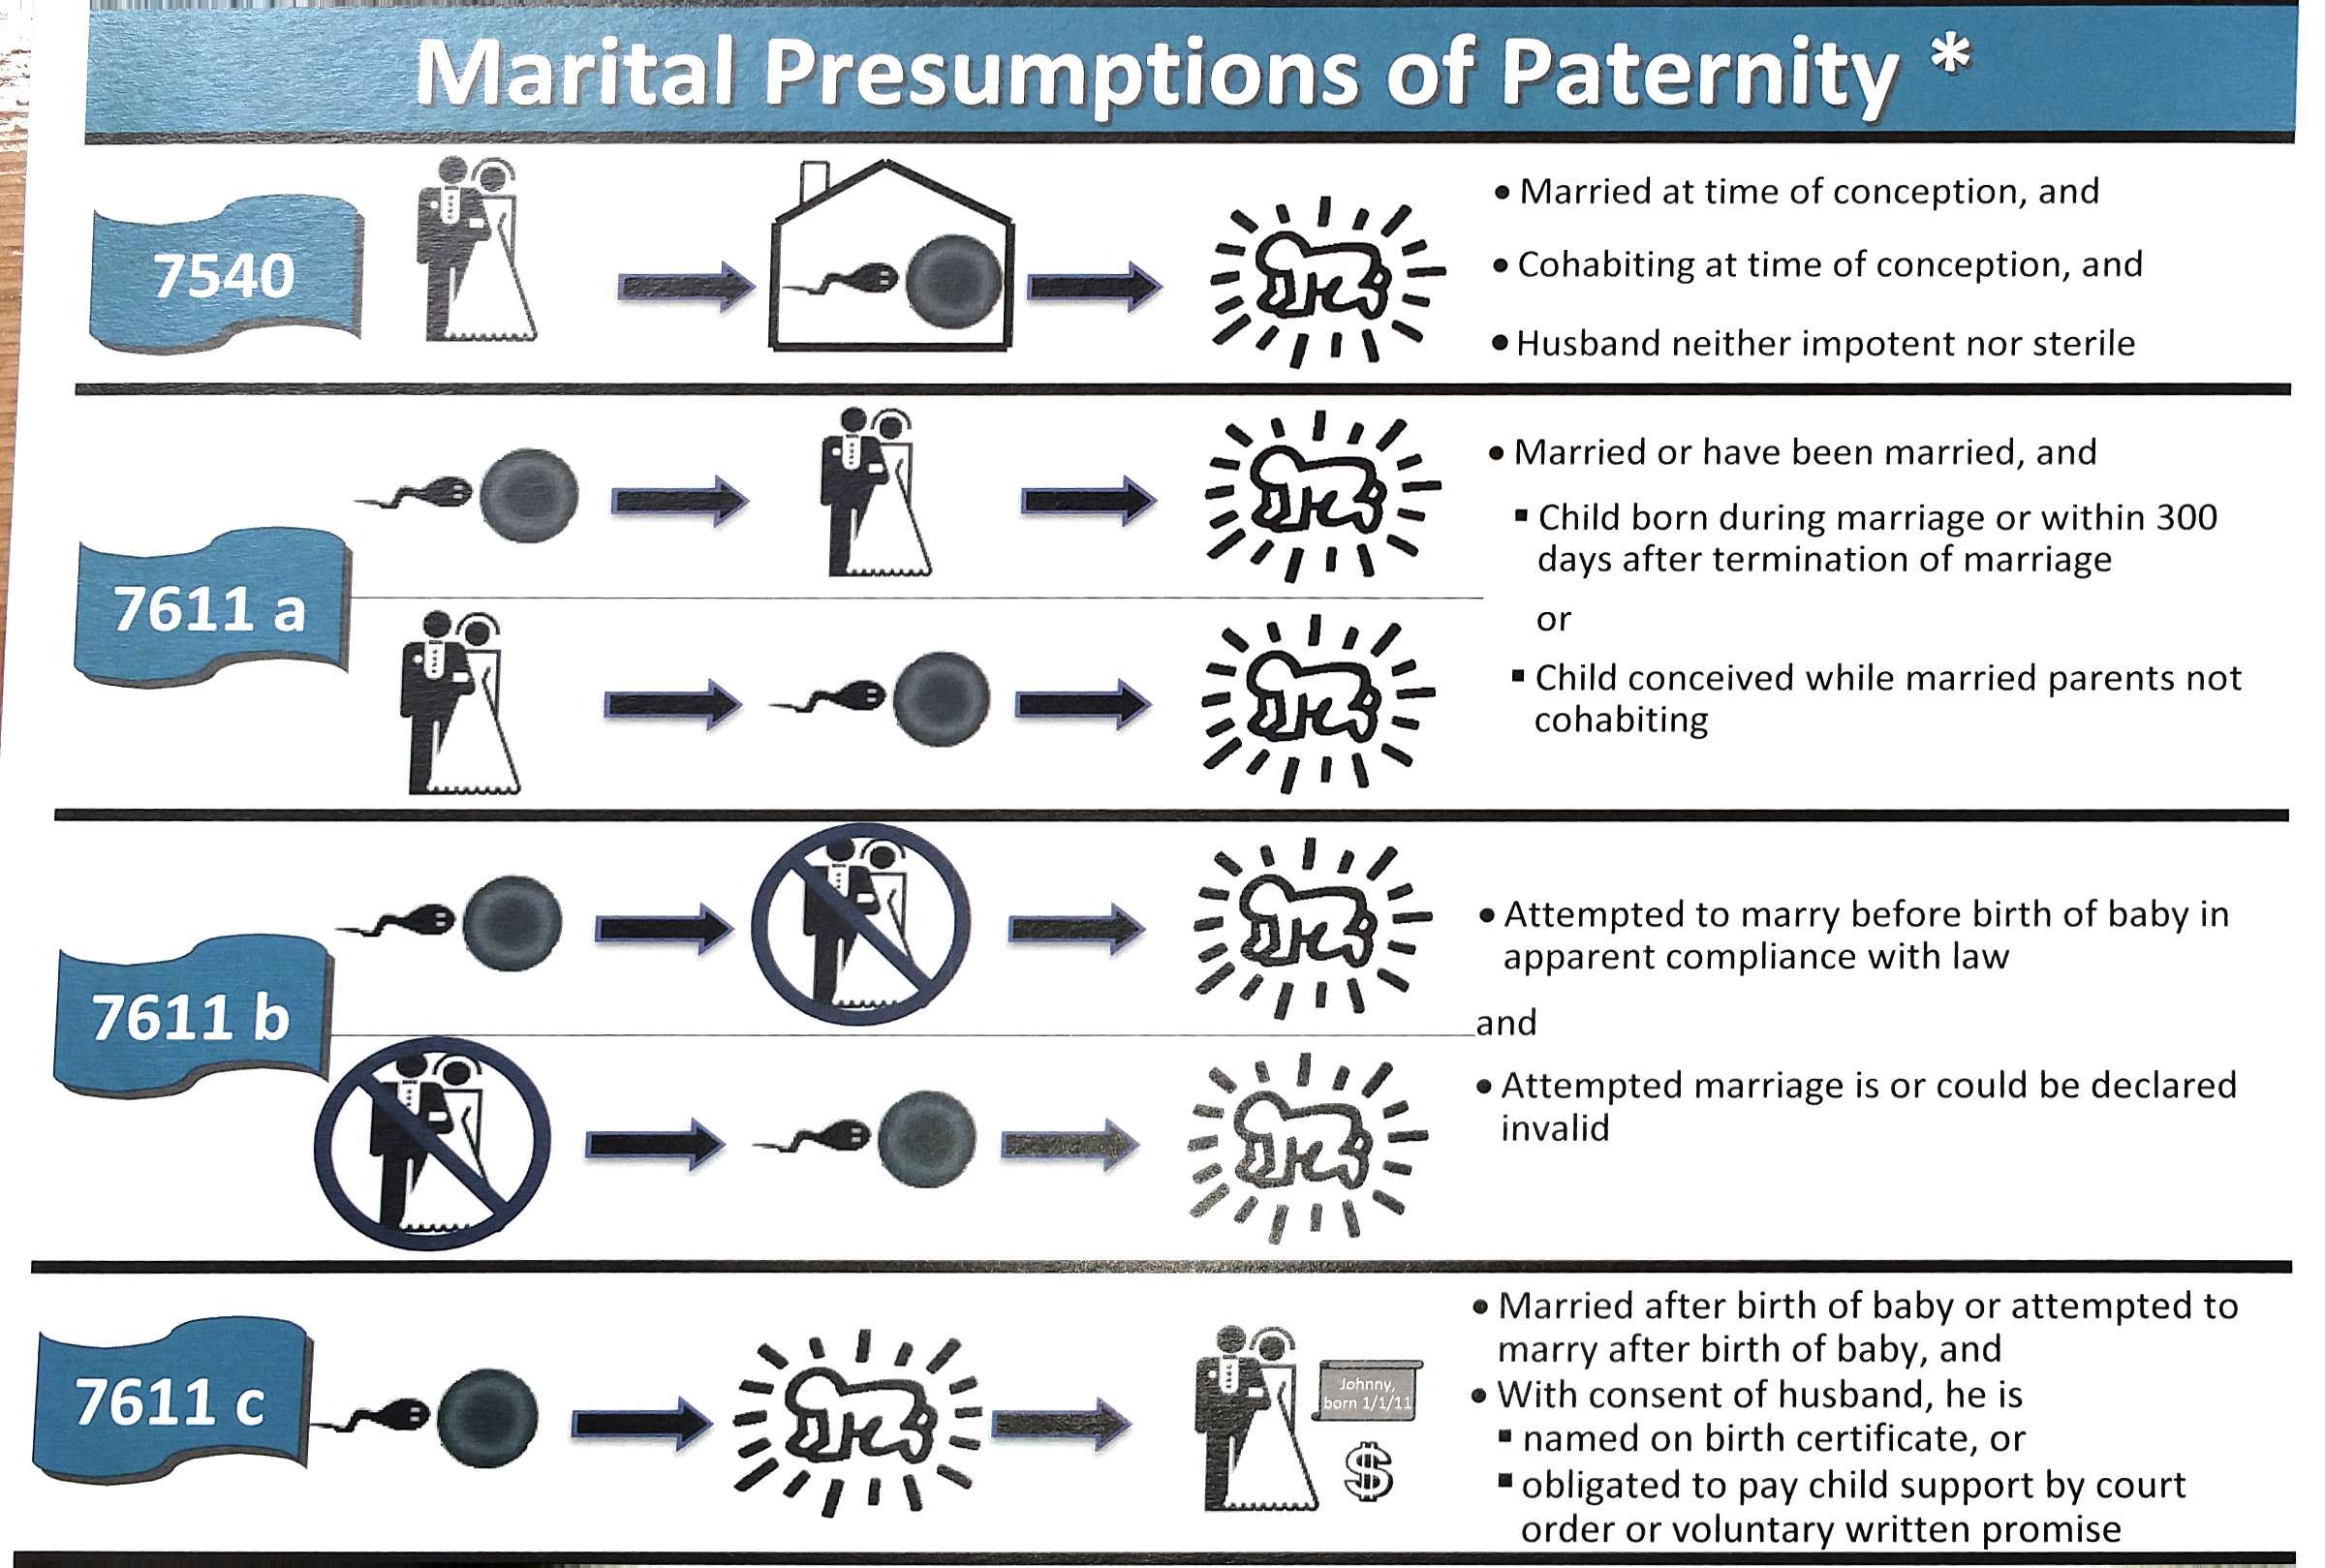 Marital presumptions of paternity visual law library marital presumptions of paternity chart nvjuhfo Image collections